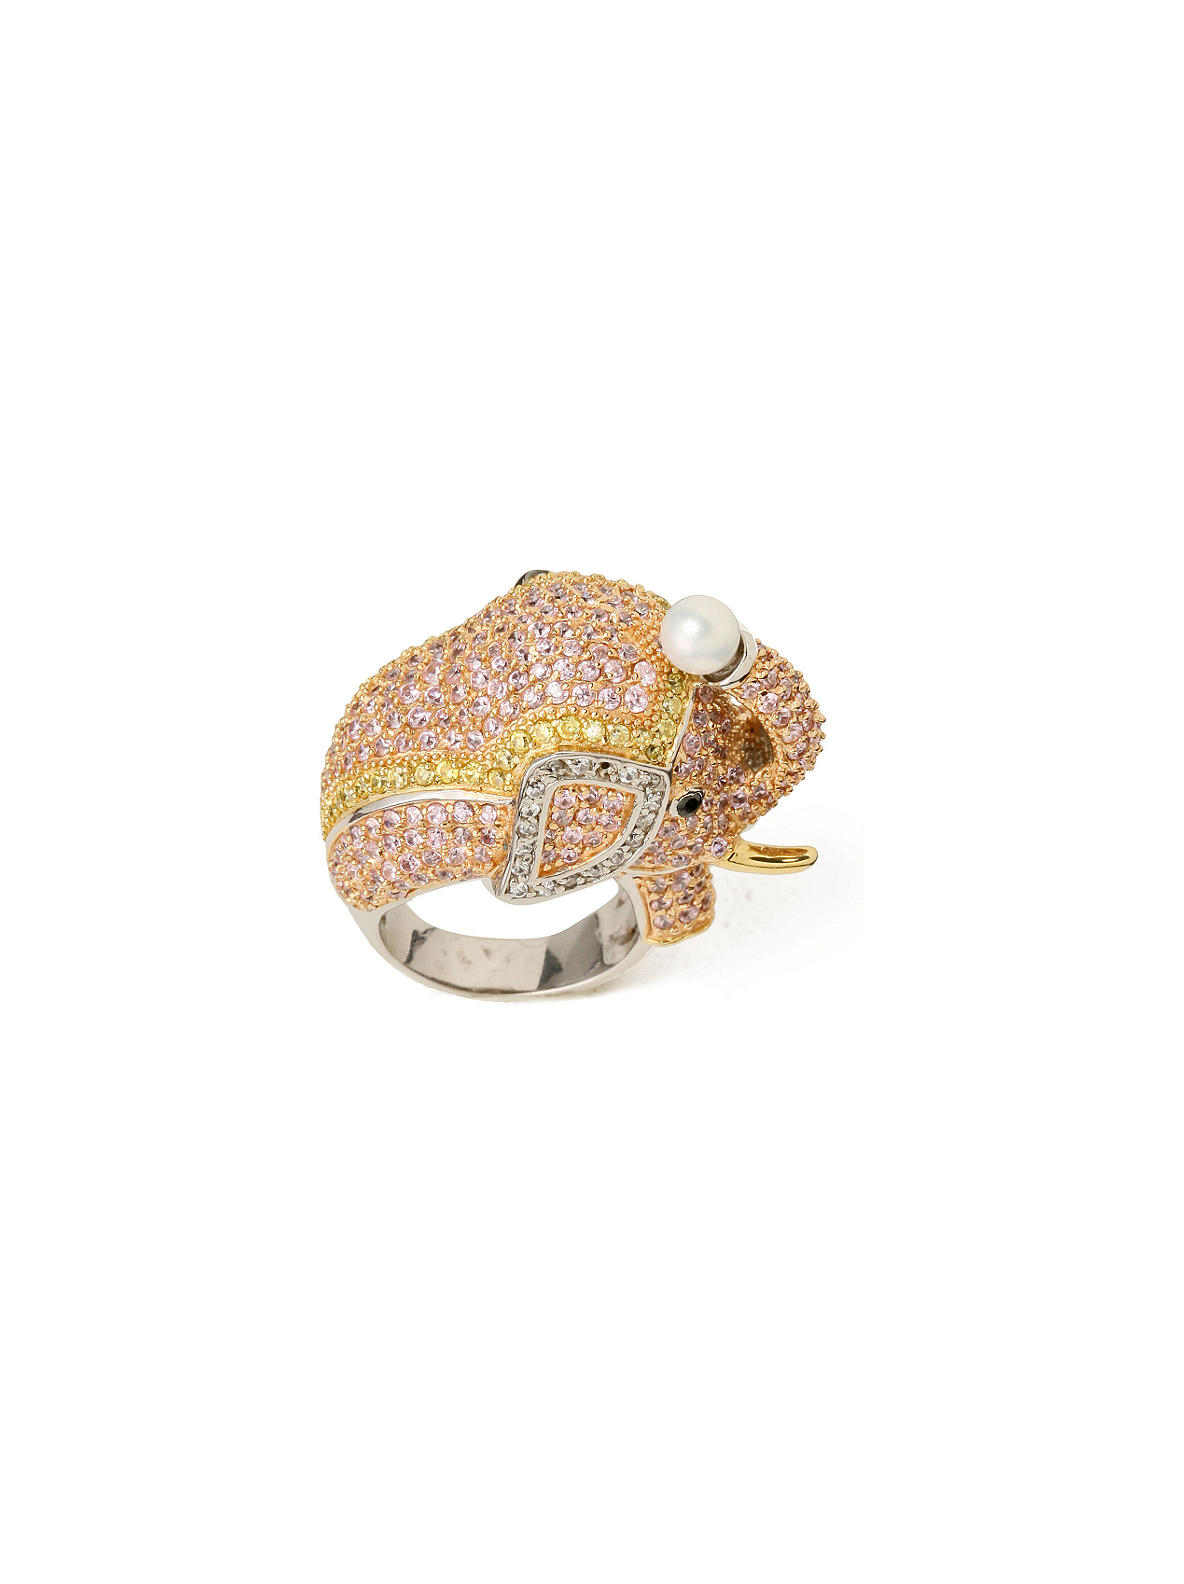 Jeweled Elephant Ring - Anthropologie.com from anthropologie.com